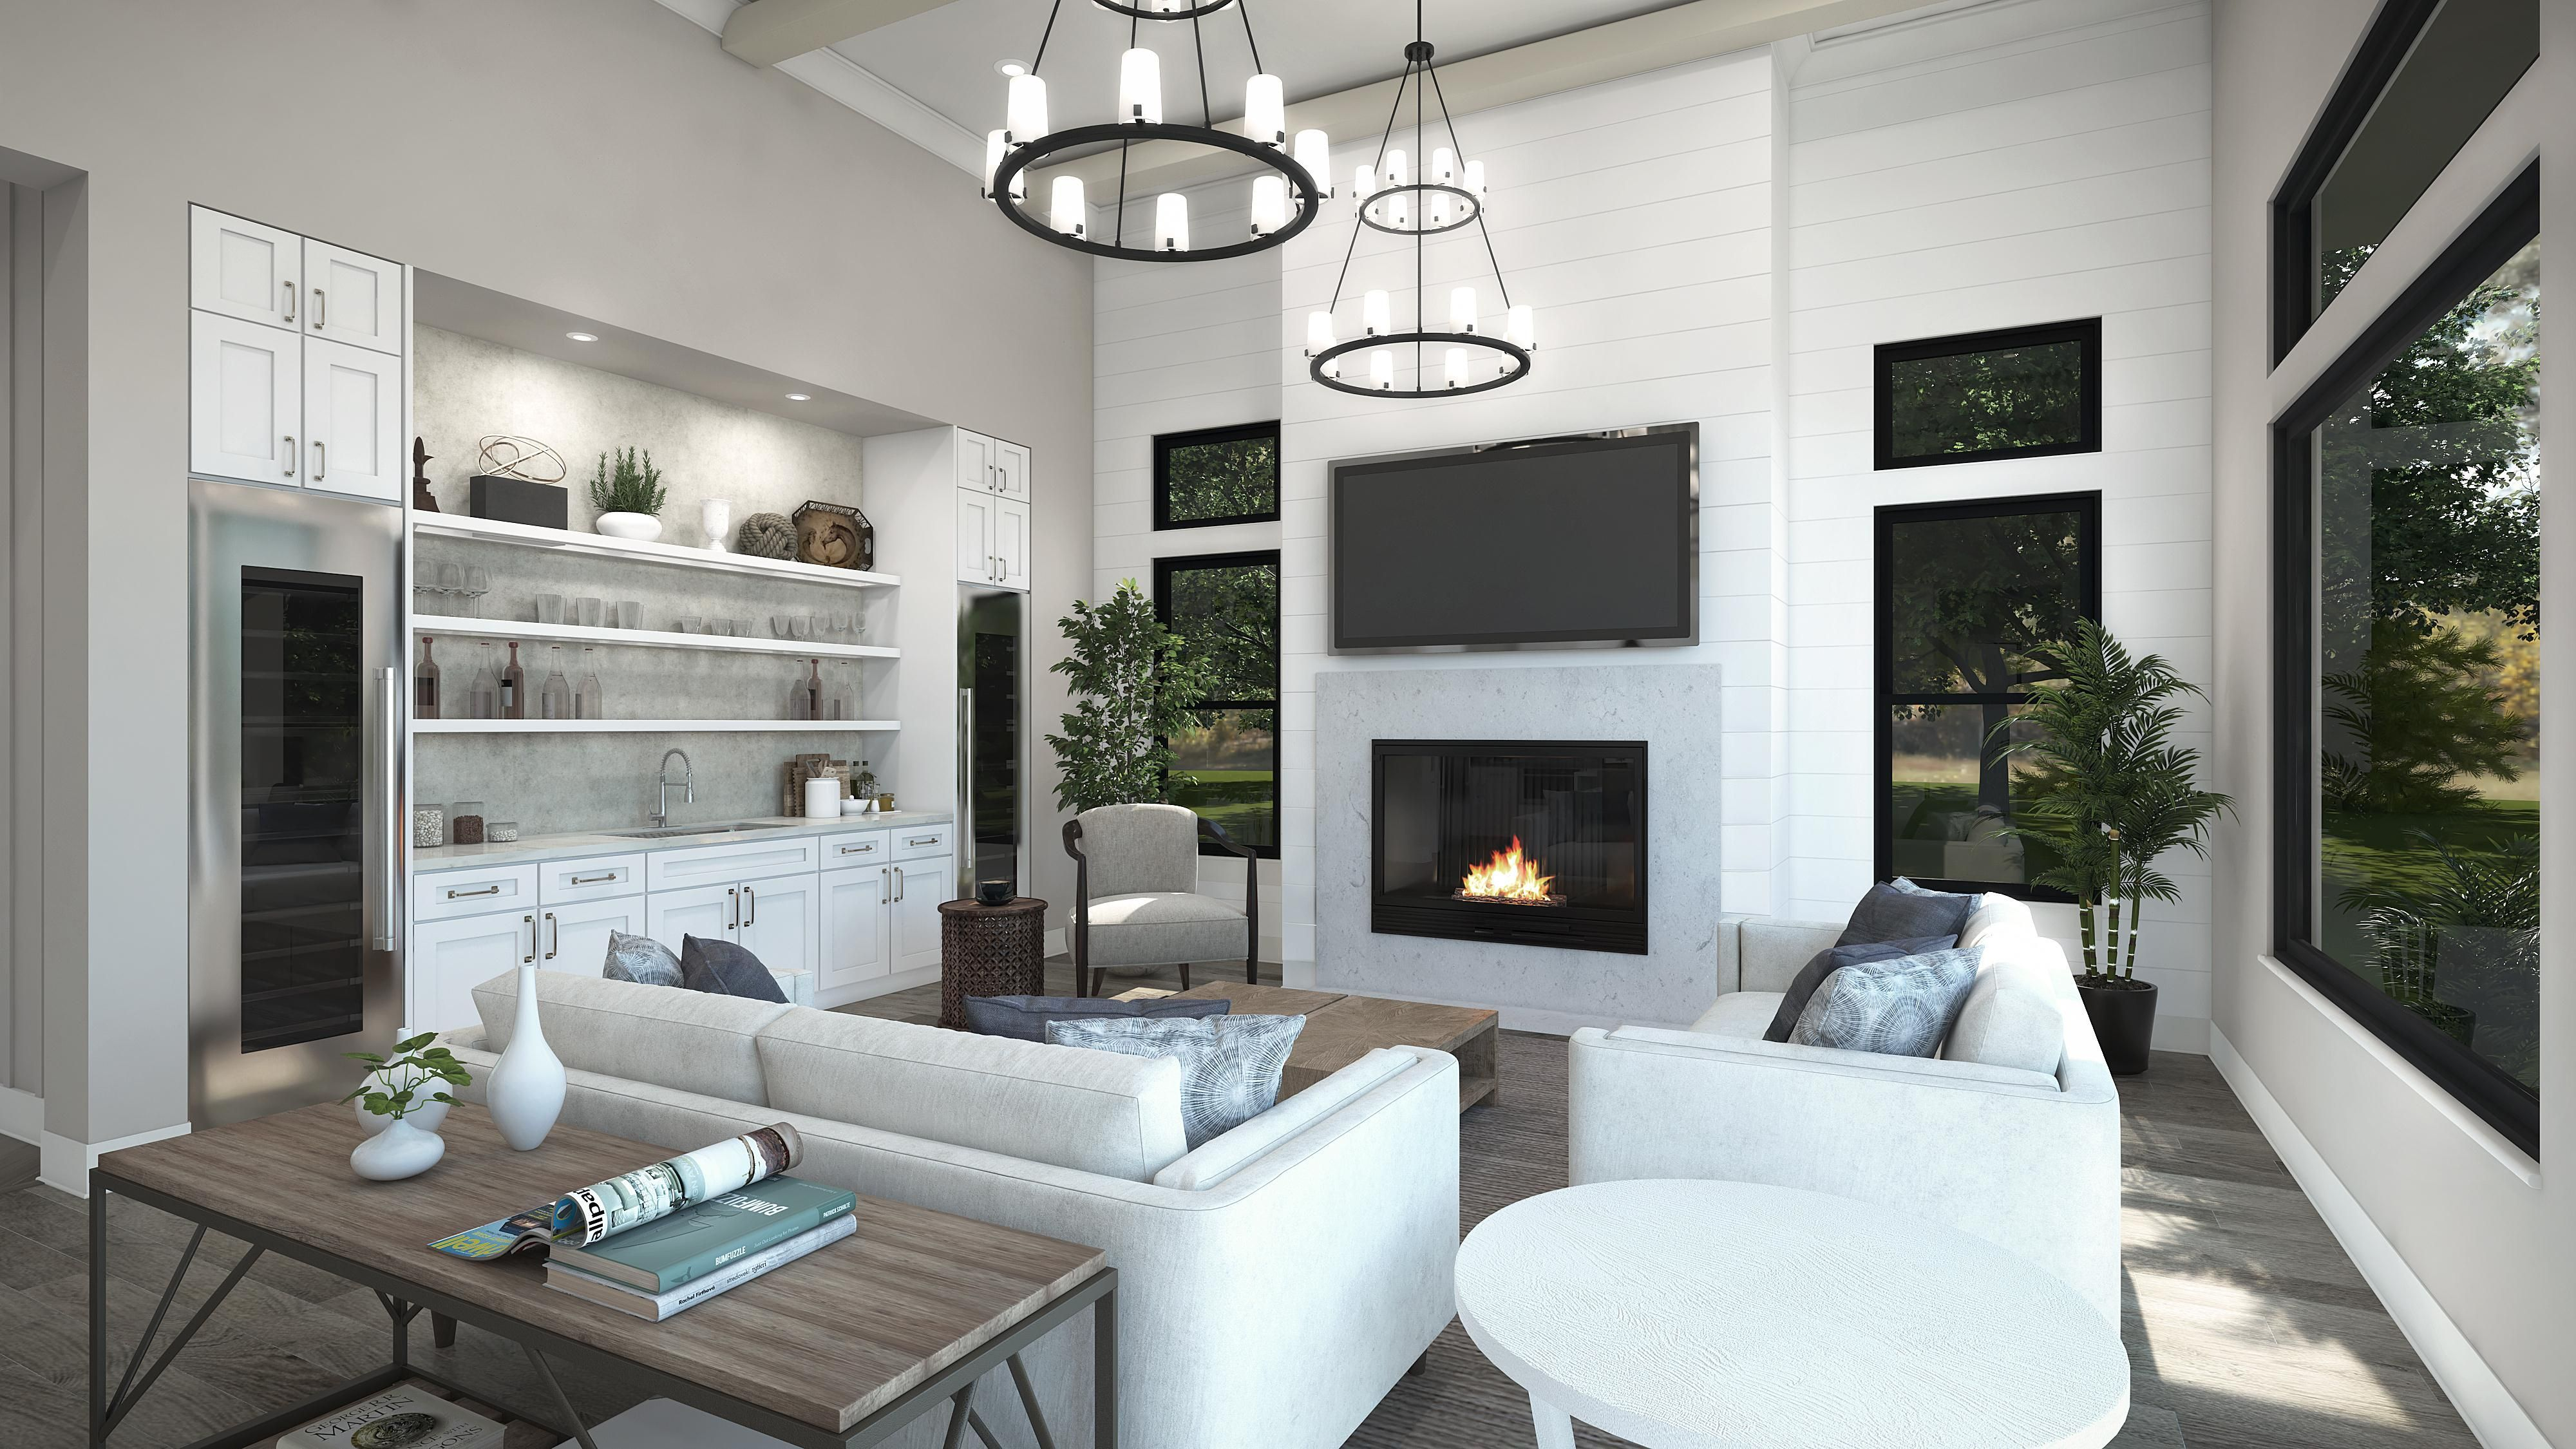 Living Area featured in the Plan 3-C By Copper Valley  in Stockton-Lodi, CA